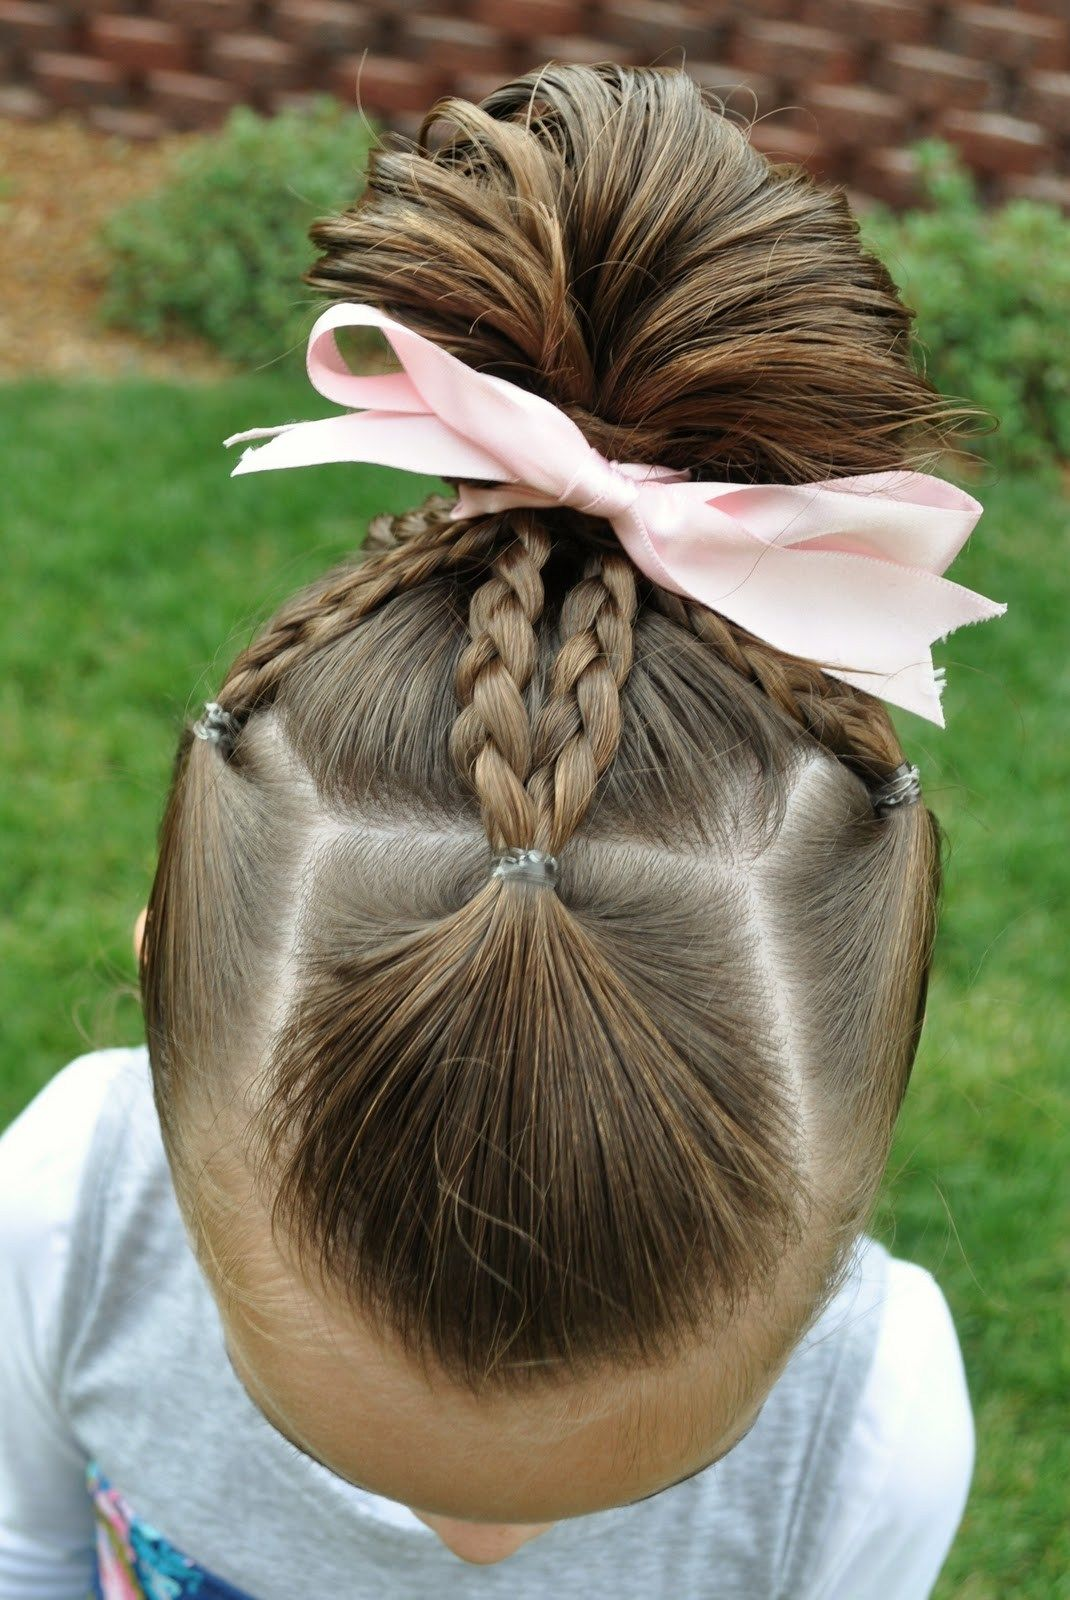 Simple Hairstyles For Little Girls | Easy little girl hairstyles, Girl hairstyles